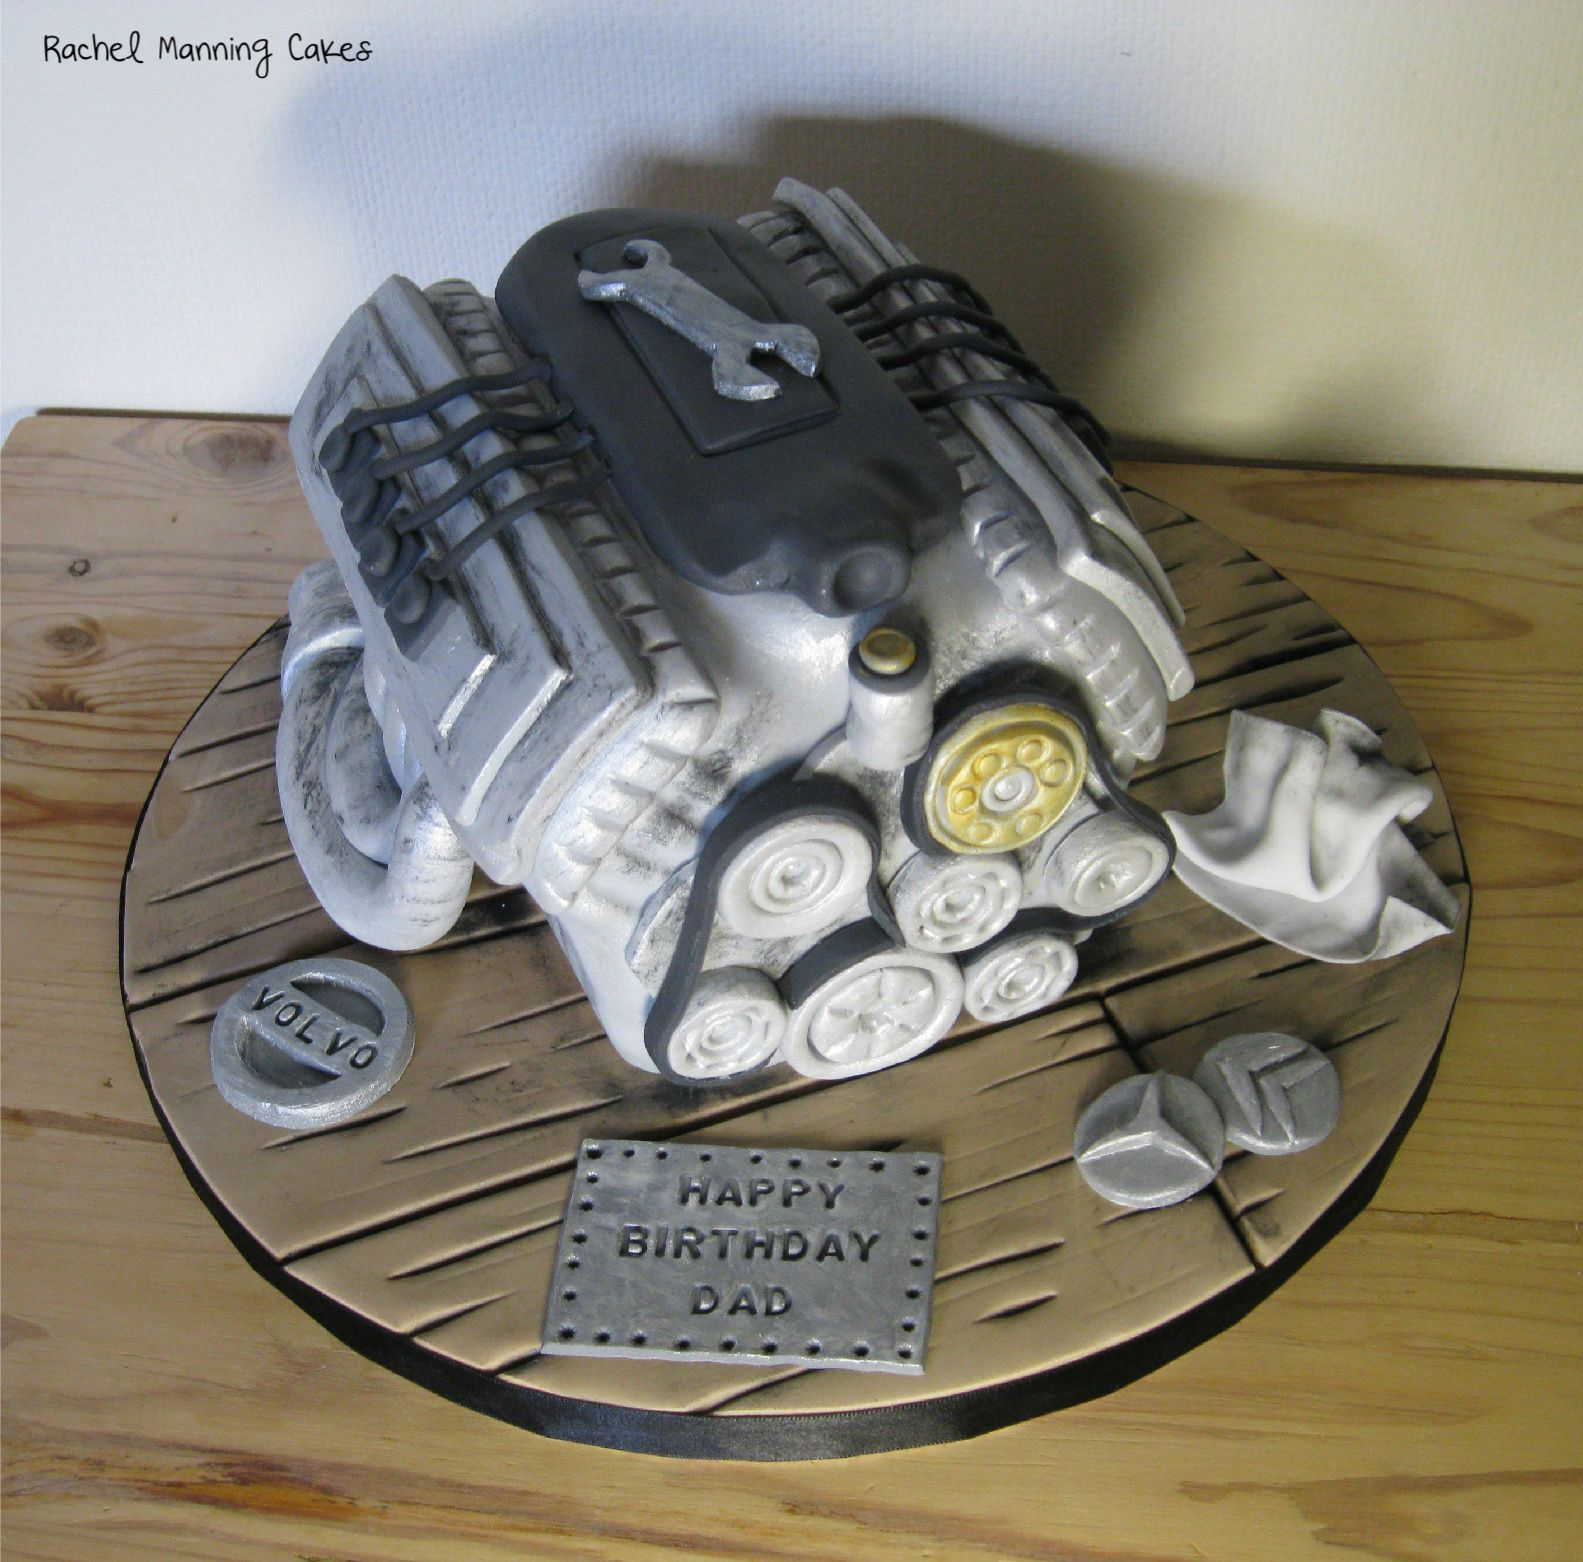 Car Engine Cake Cakes Pinterest Car engine Engine and Cake